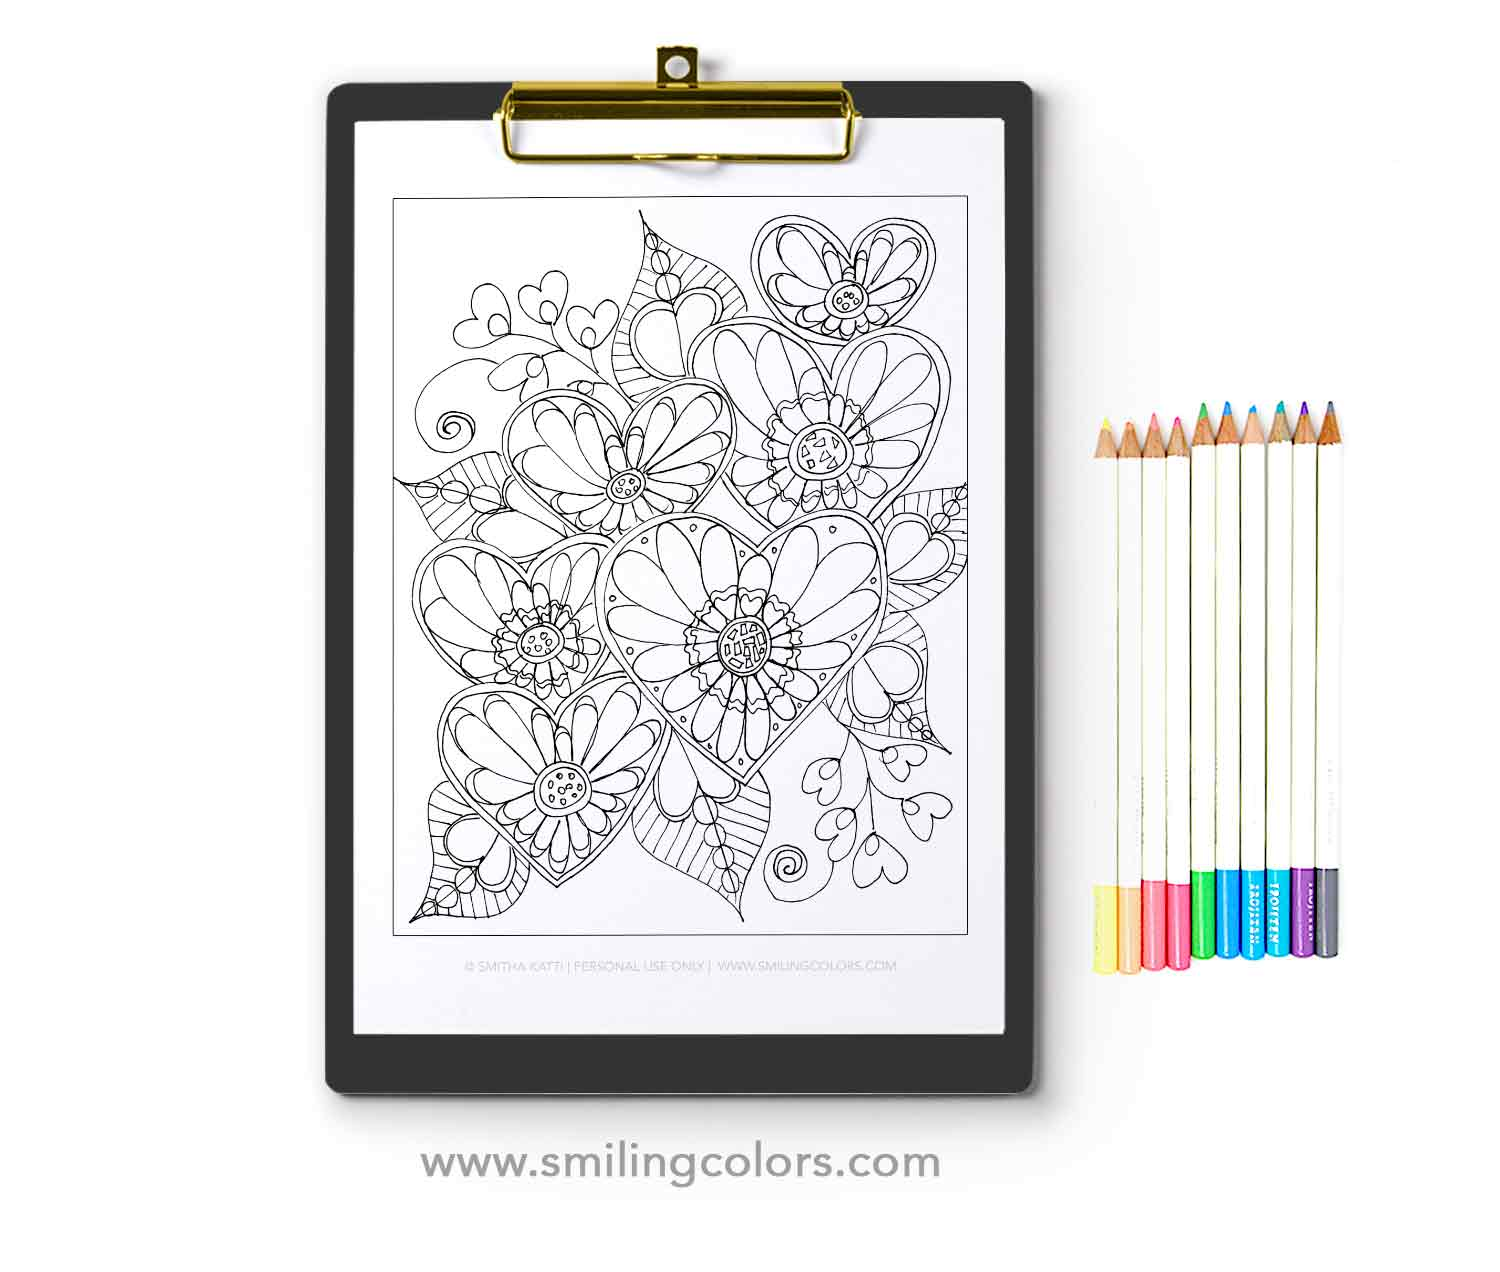 3 FREE Heart Coloring Pages That You Can Enjoy Now! - Smitha Katti